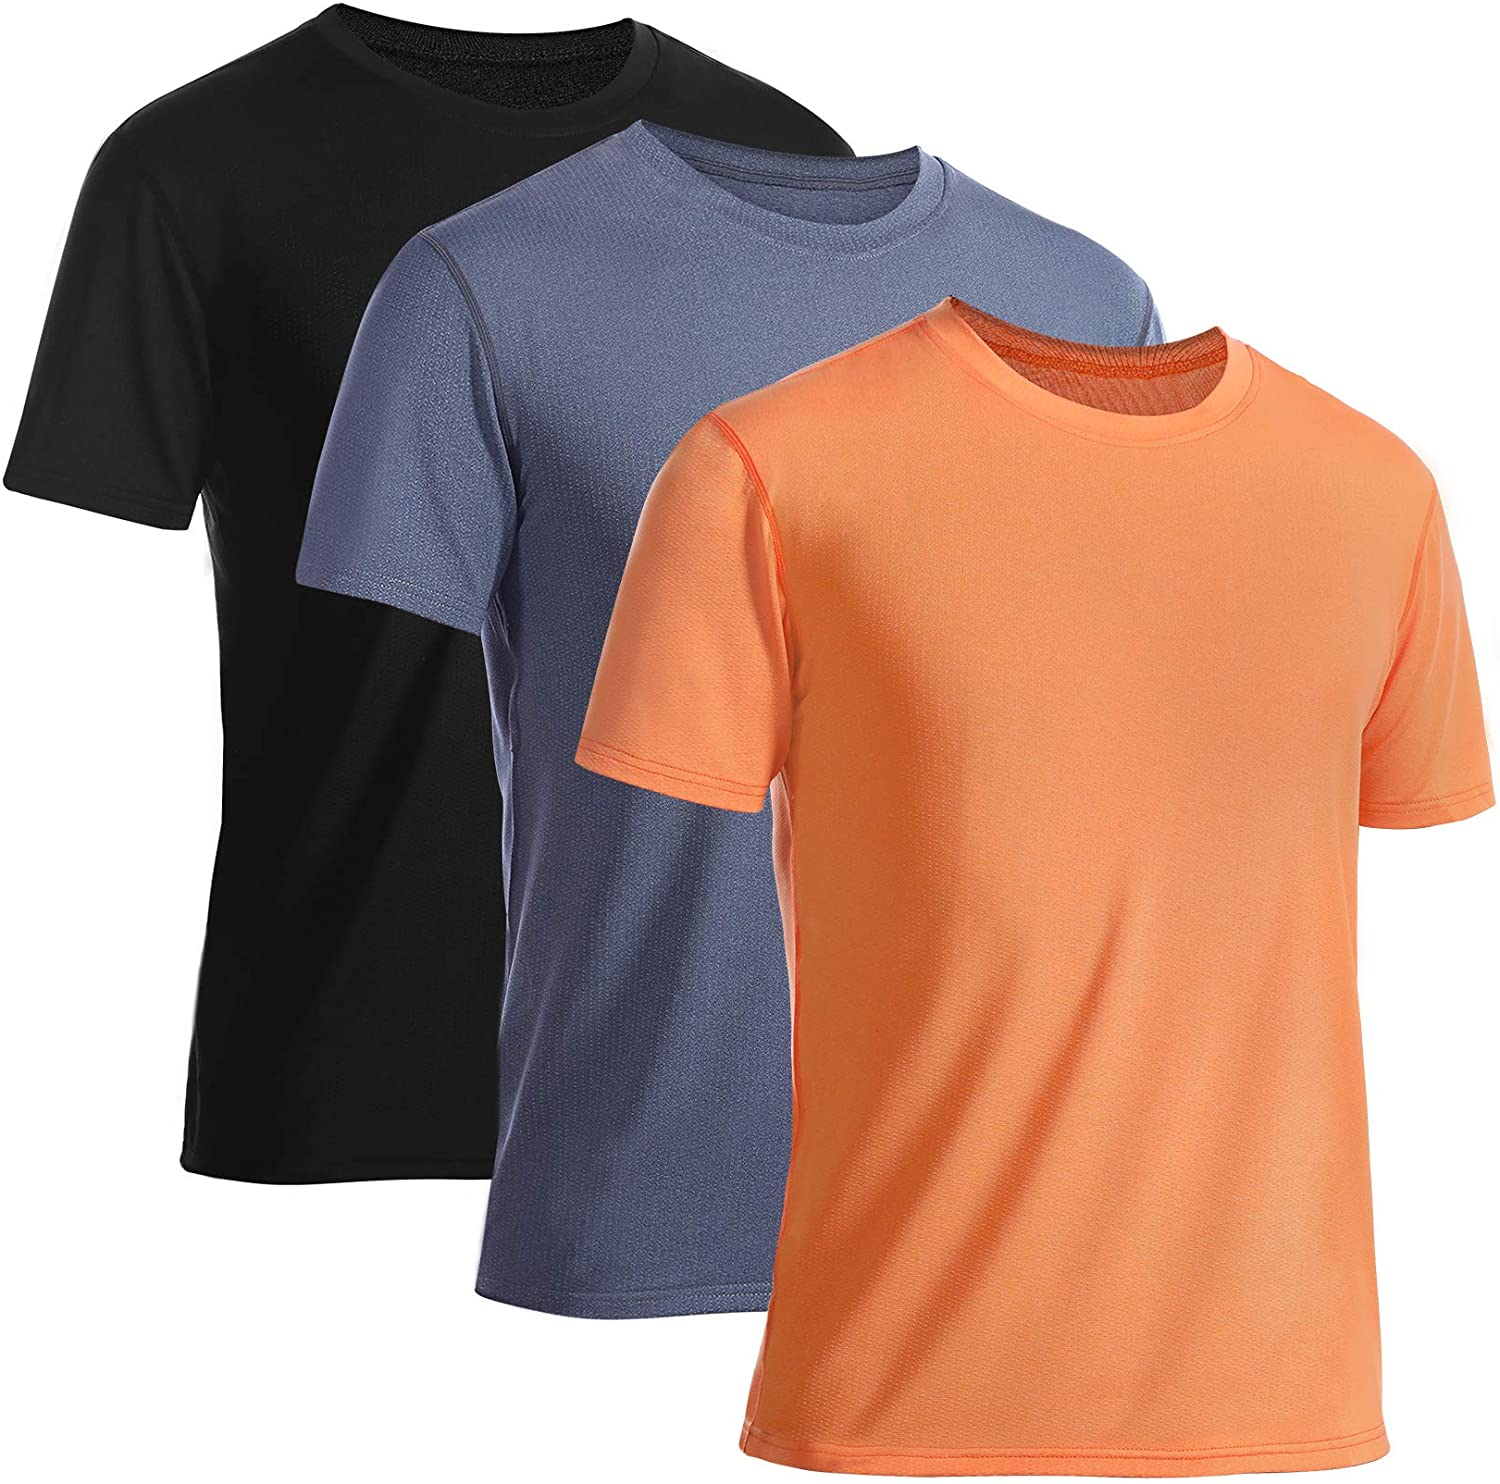 Ranking TOP9 Runhit 3Pack Workout All items free shipping Shirts for Men T-Shirts Moisture Dry Quick